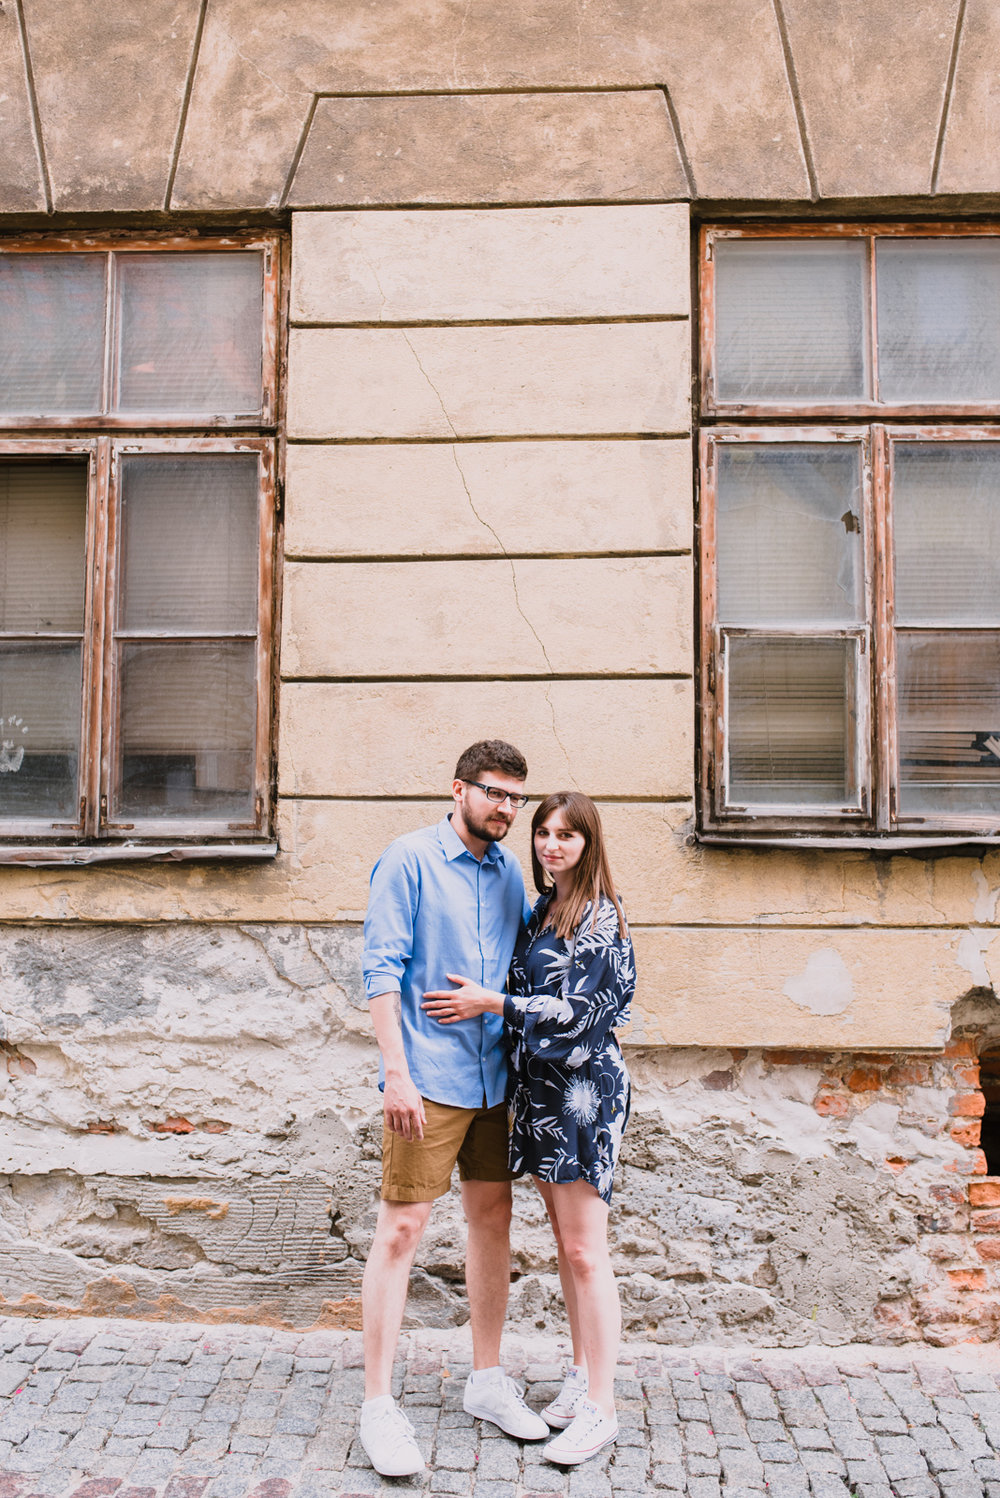 engagement shoot in Lublin Poland, summer engagement shoot in the city, old town engagement photos taken by Hello, Sugar Destination Wedding Photography-4.jpg